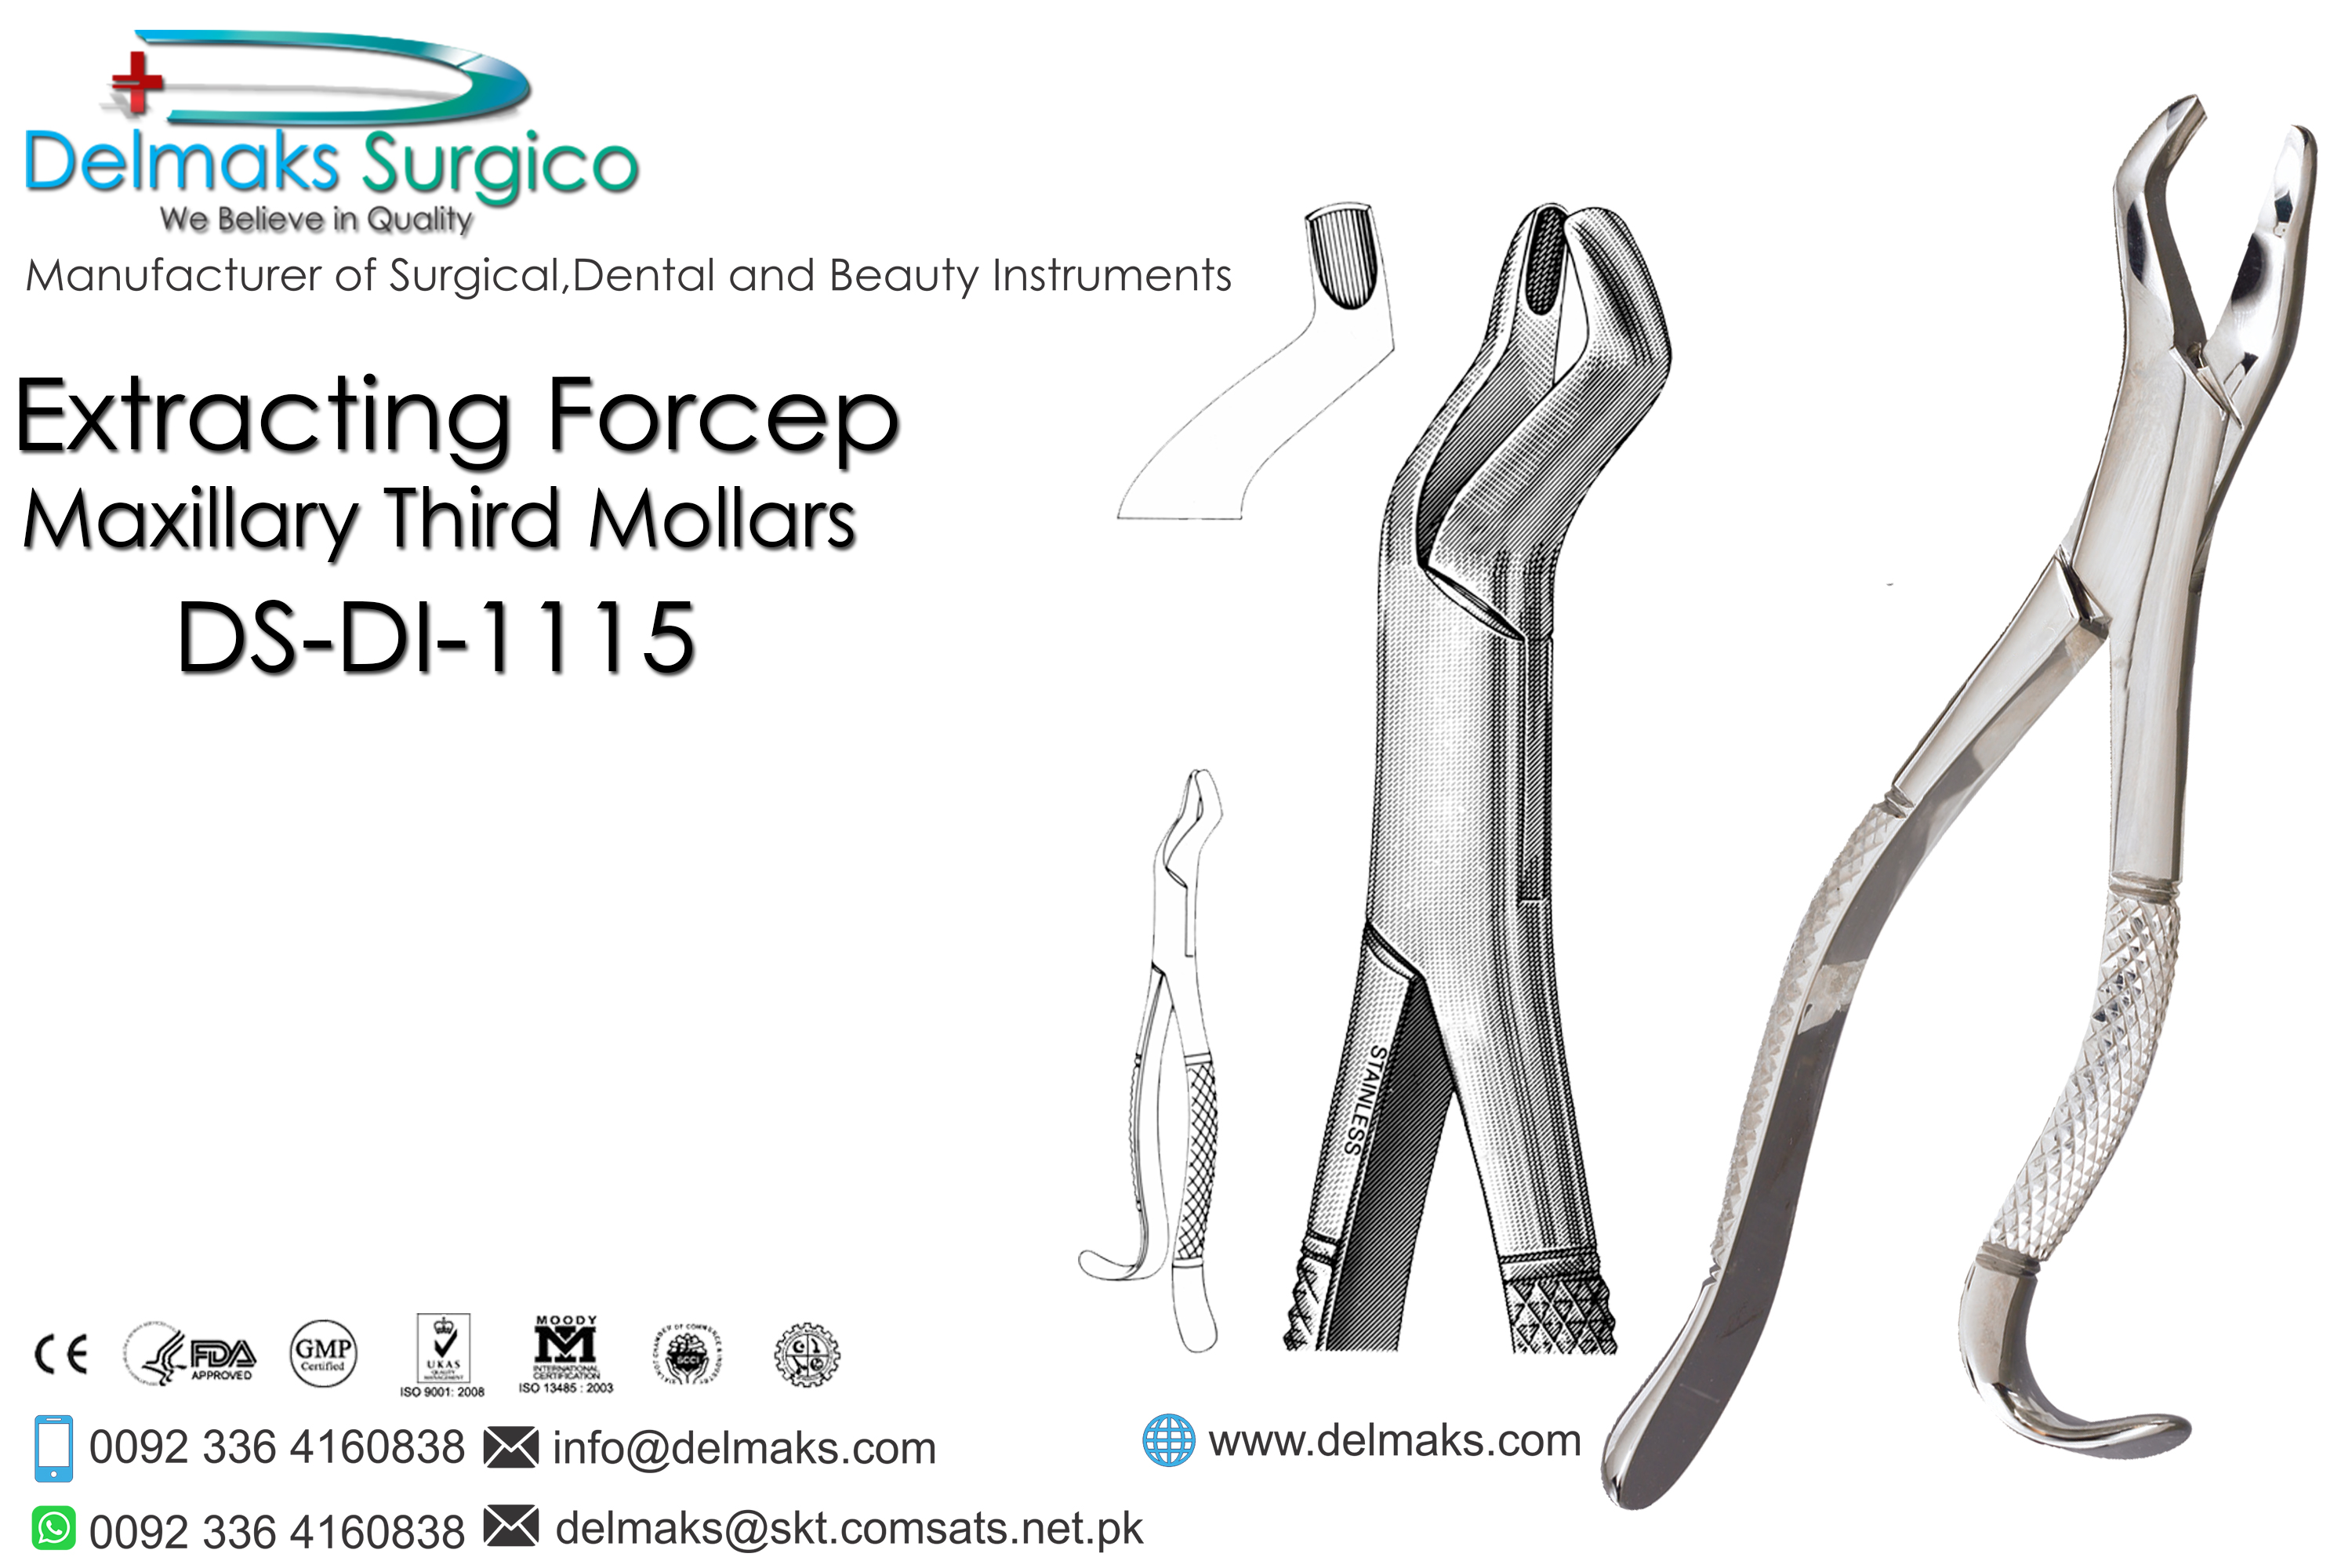 Extracting Forceps (Maxillary Third Mollars)-Oral and Maxillofacial Surgery Instruments-Dental Instruments-Delmaks Surgico